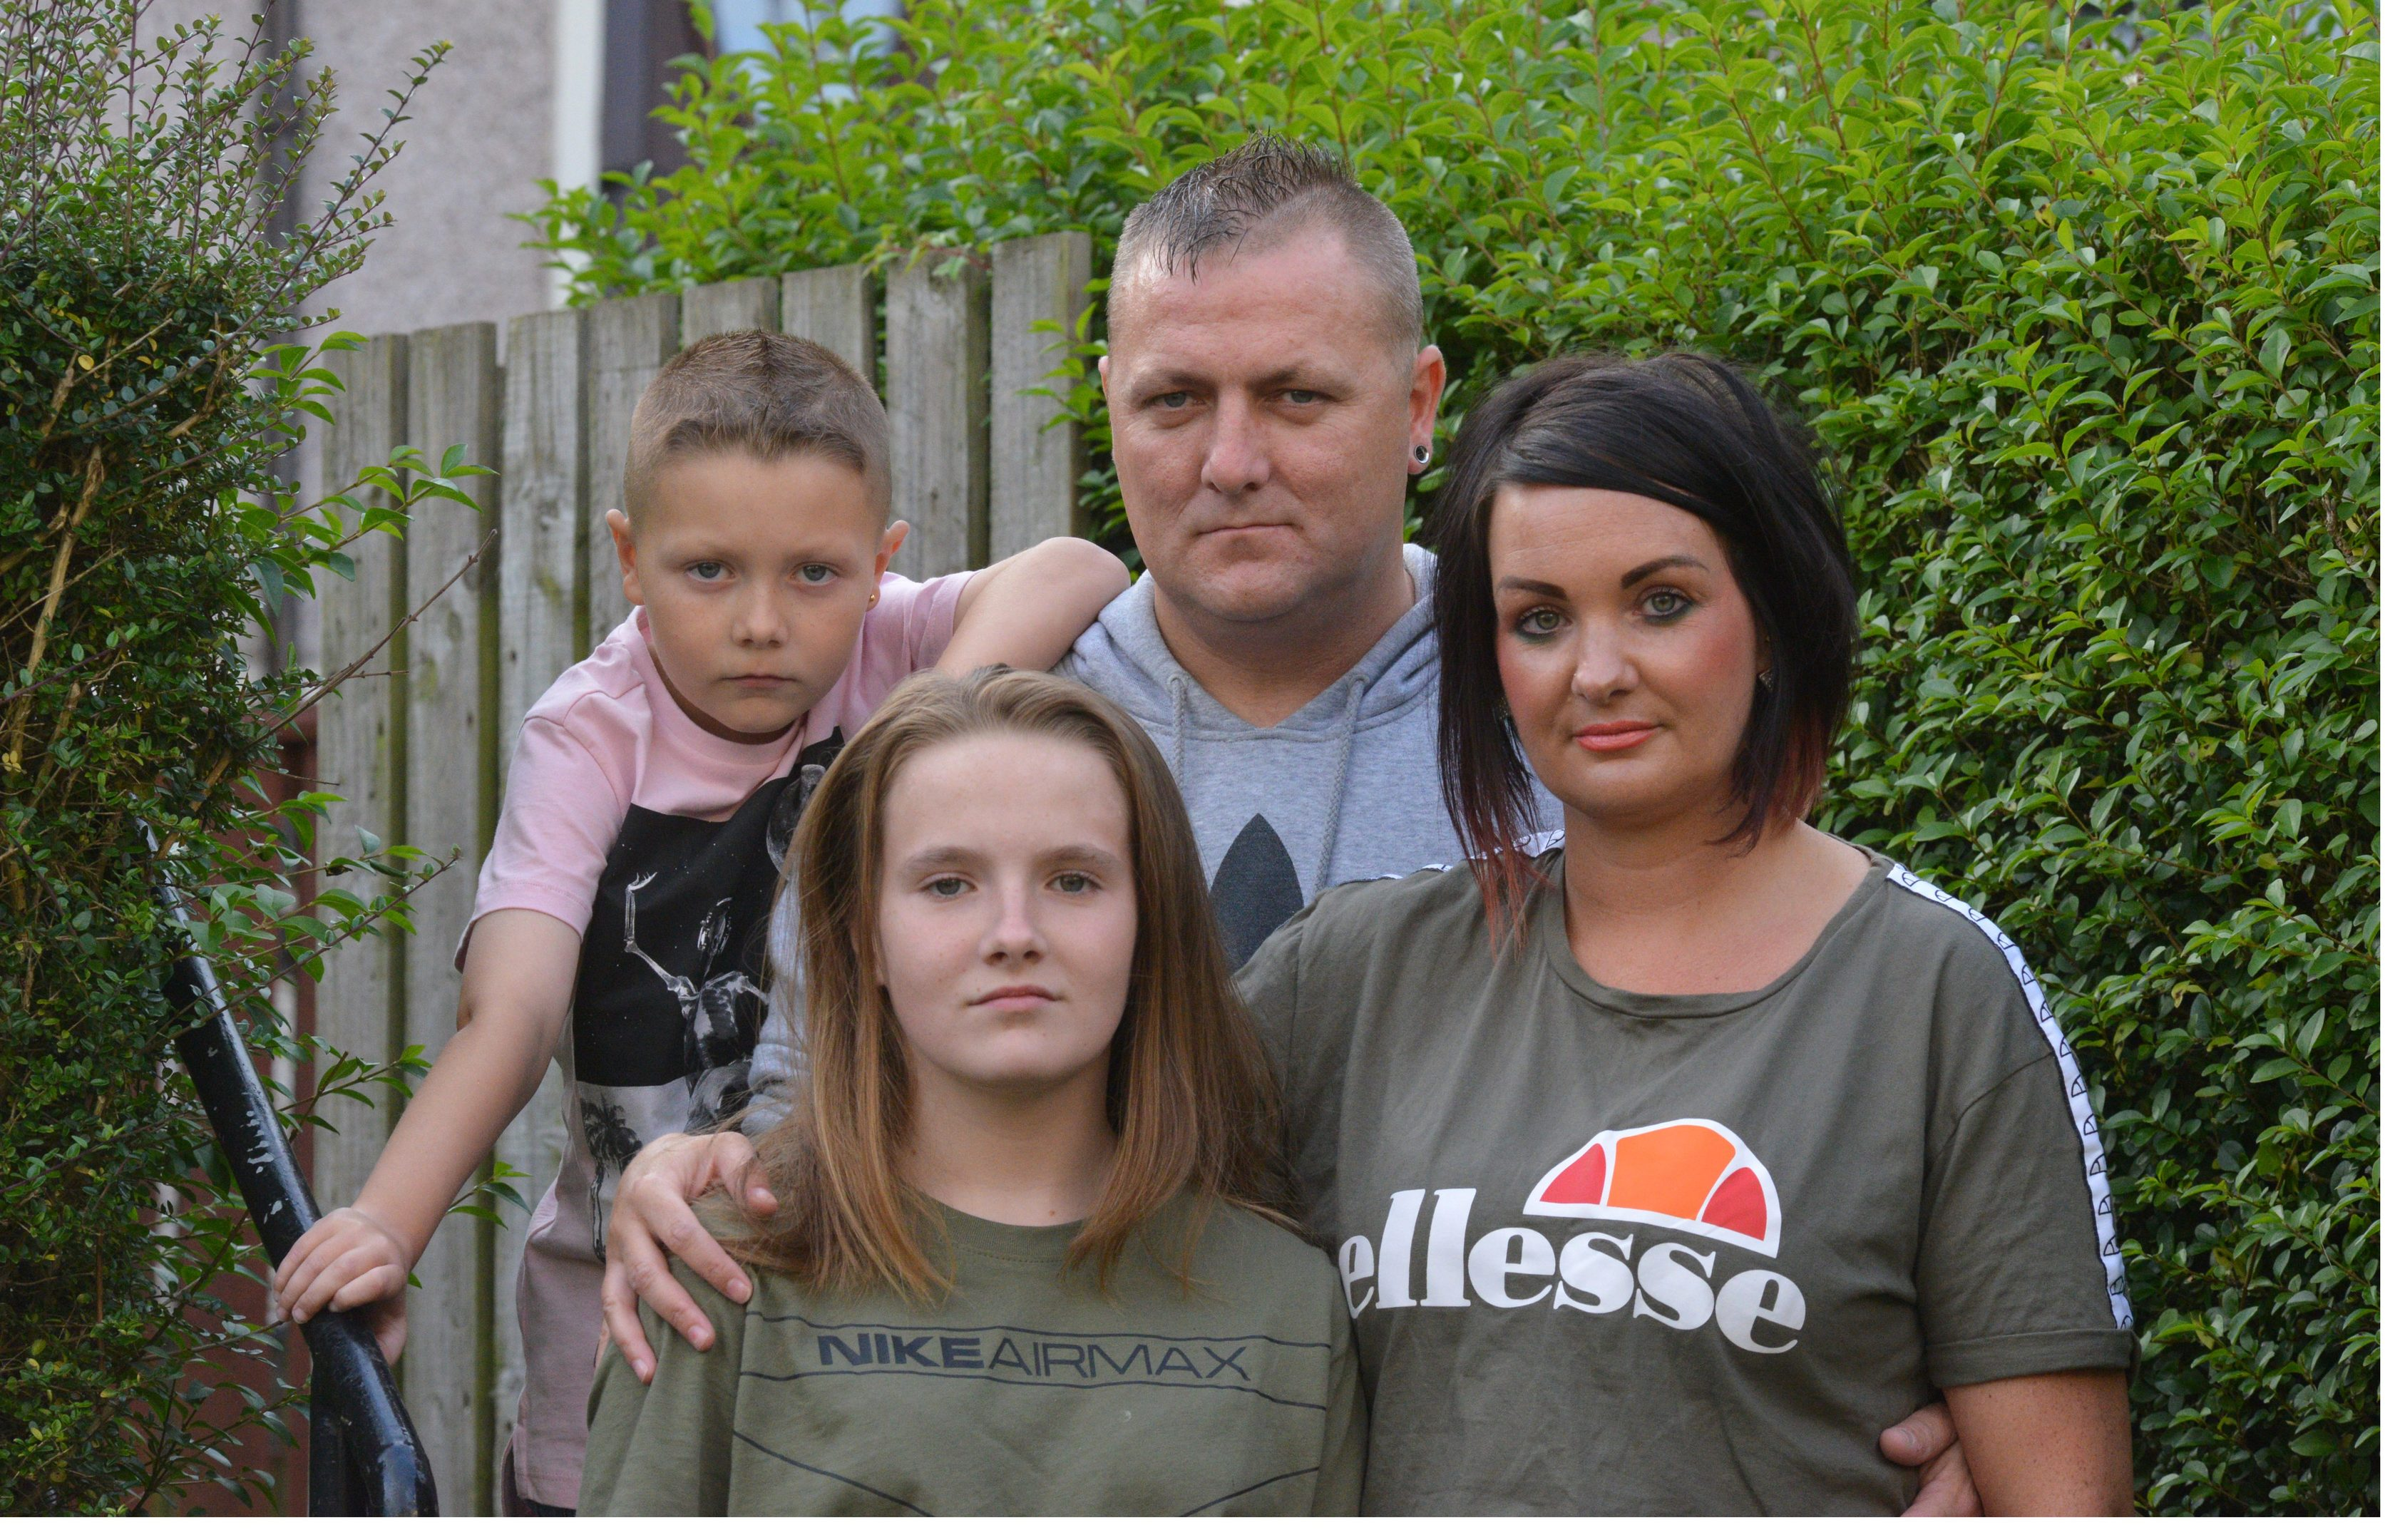 Mum claims lives are in danger because schools are not fully aware of diabetes risks - The Courier